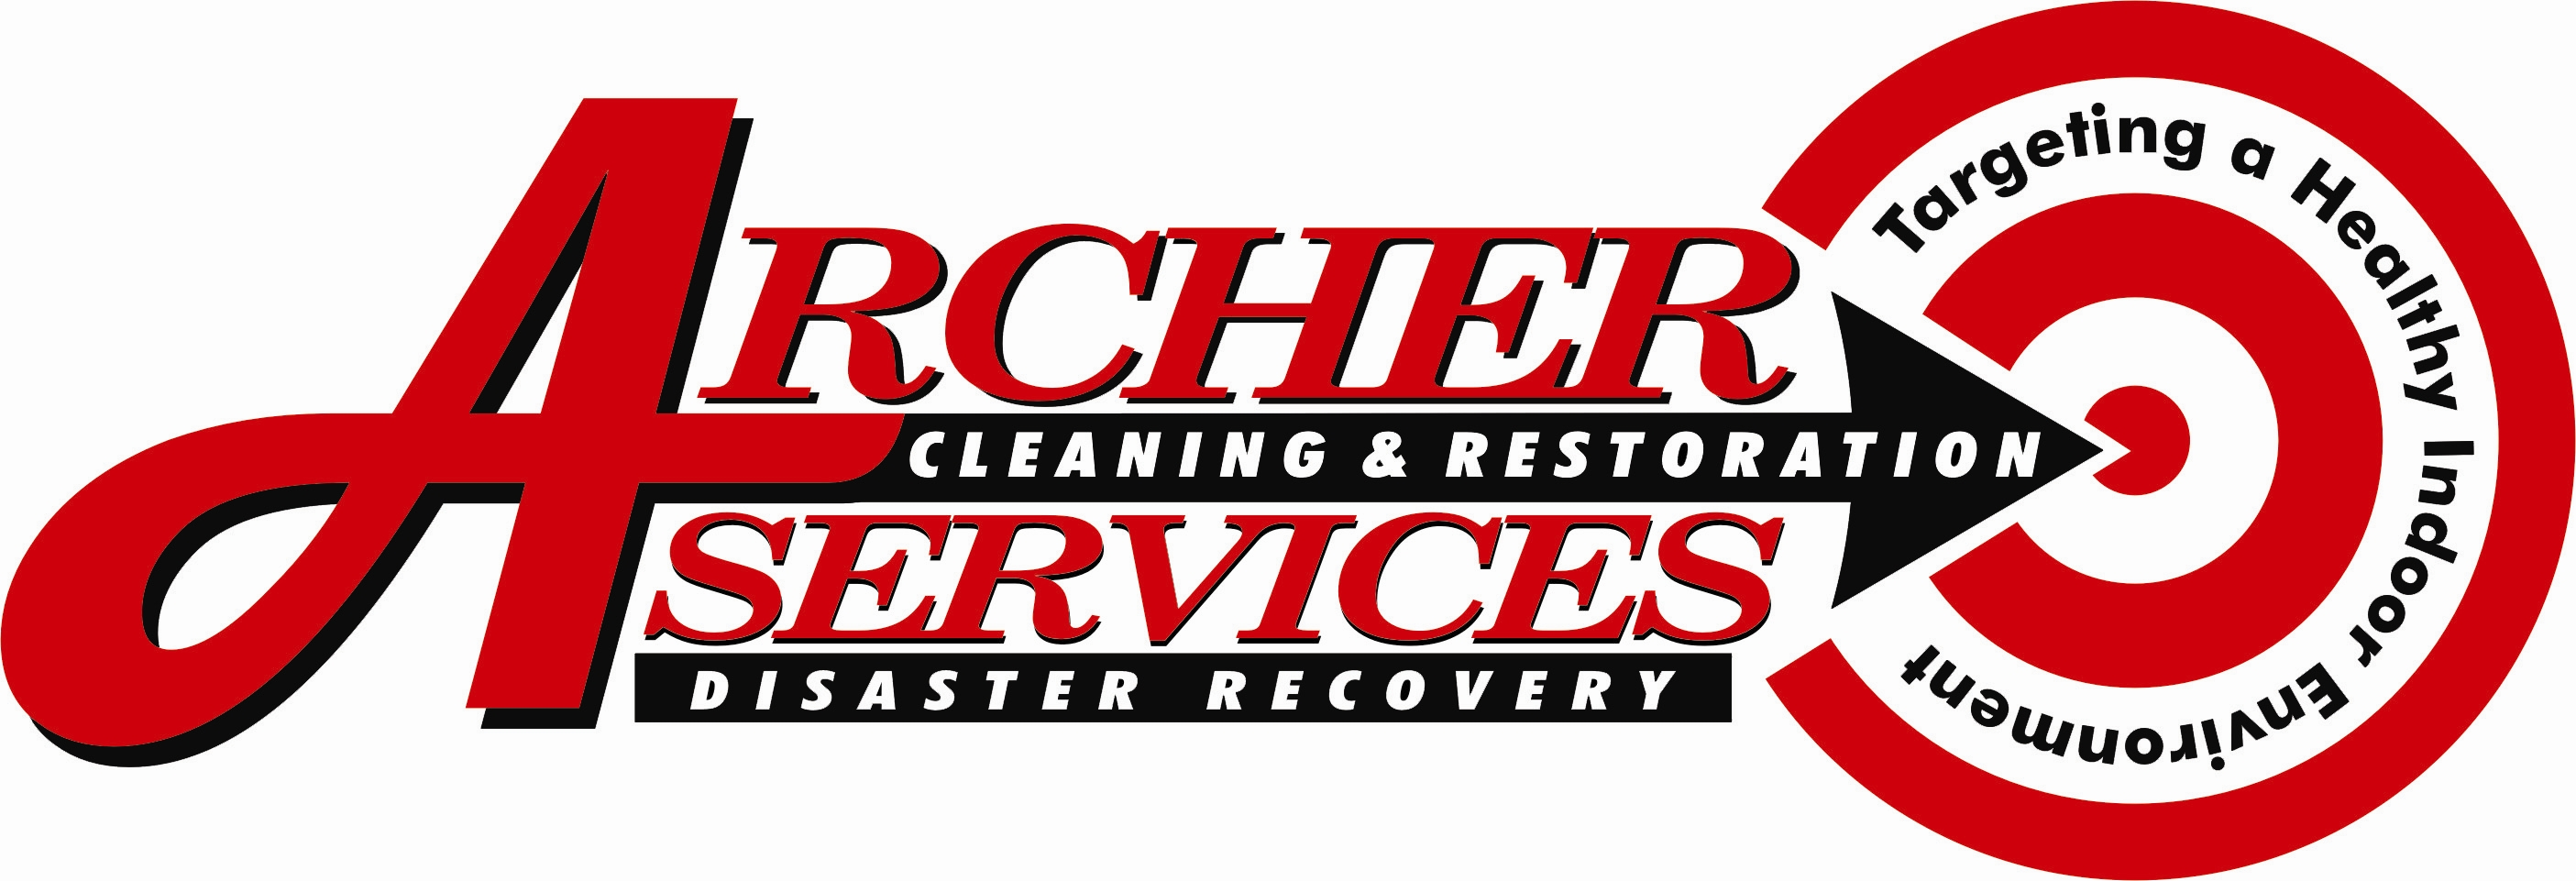 Archer Cleaning & Restoration Services